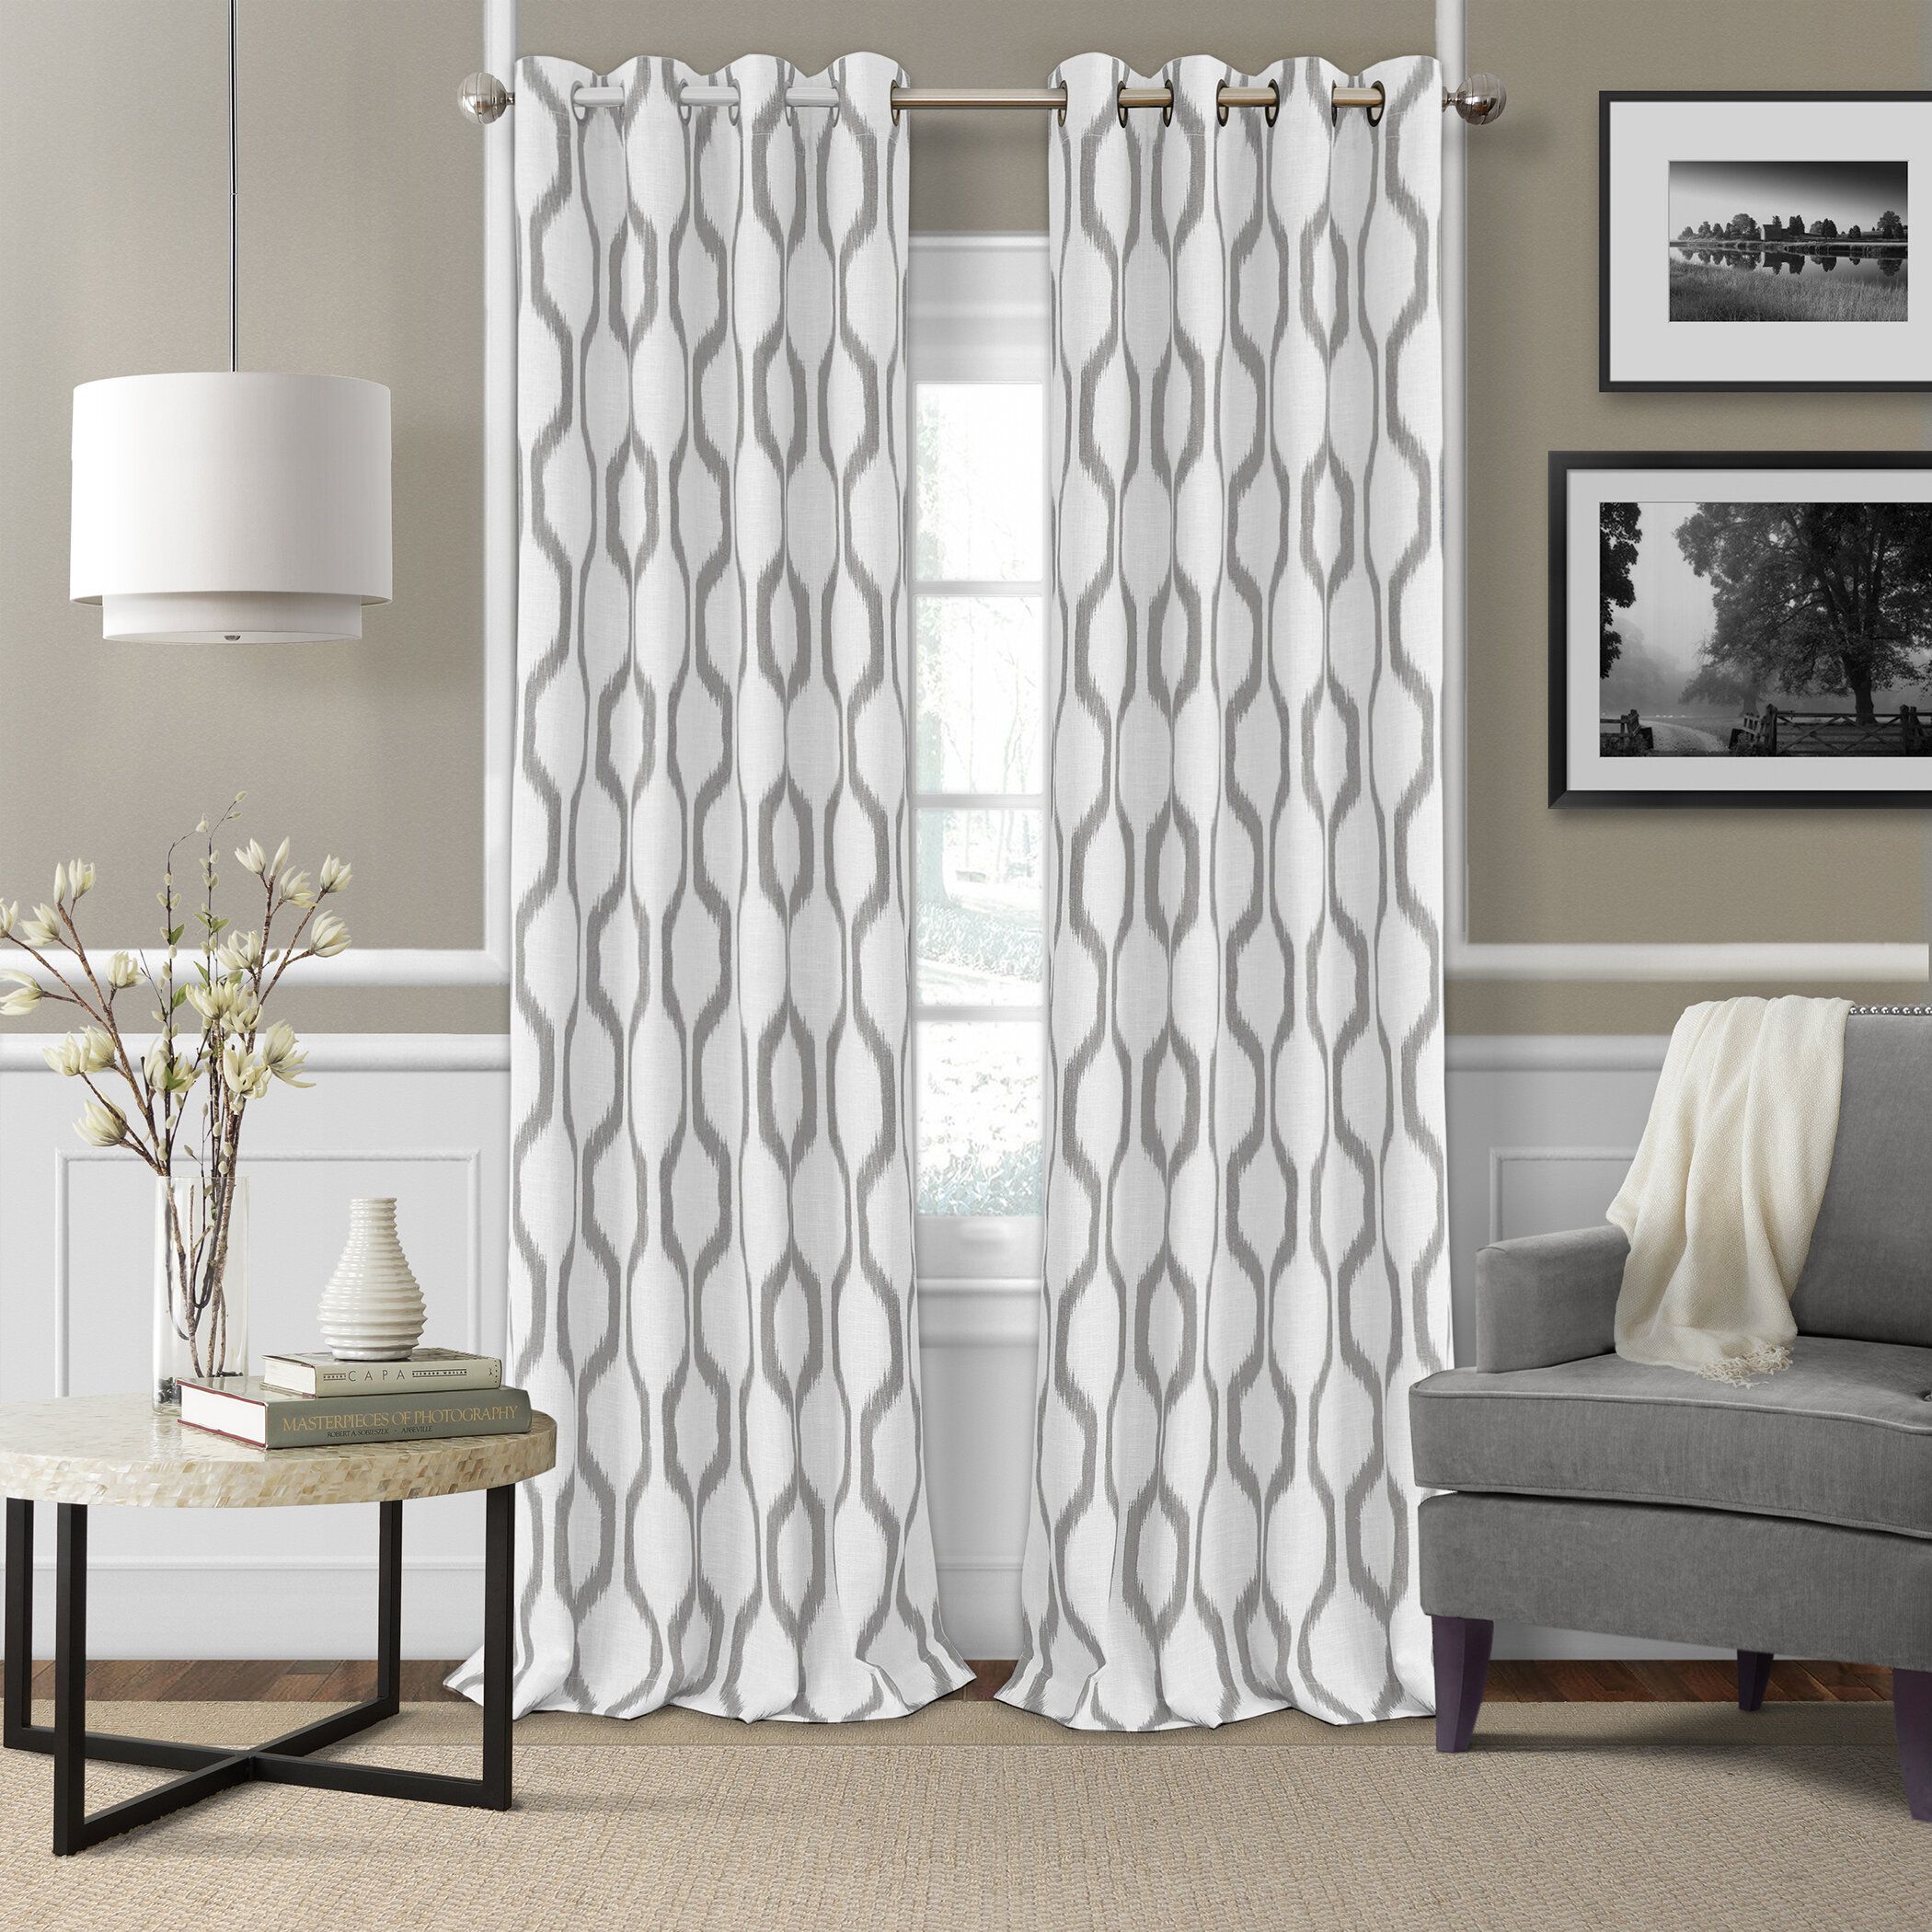 plant panels blue inspirations outstanding merge modern size geometric birch room grommet lane darkening black image and baby curtains polyester full print drapes of city curtainsgeometric